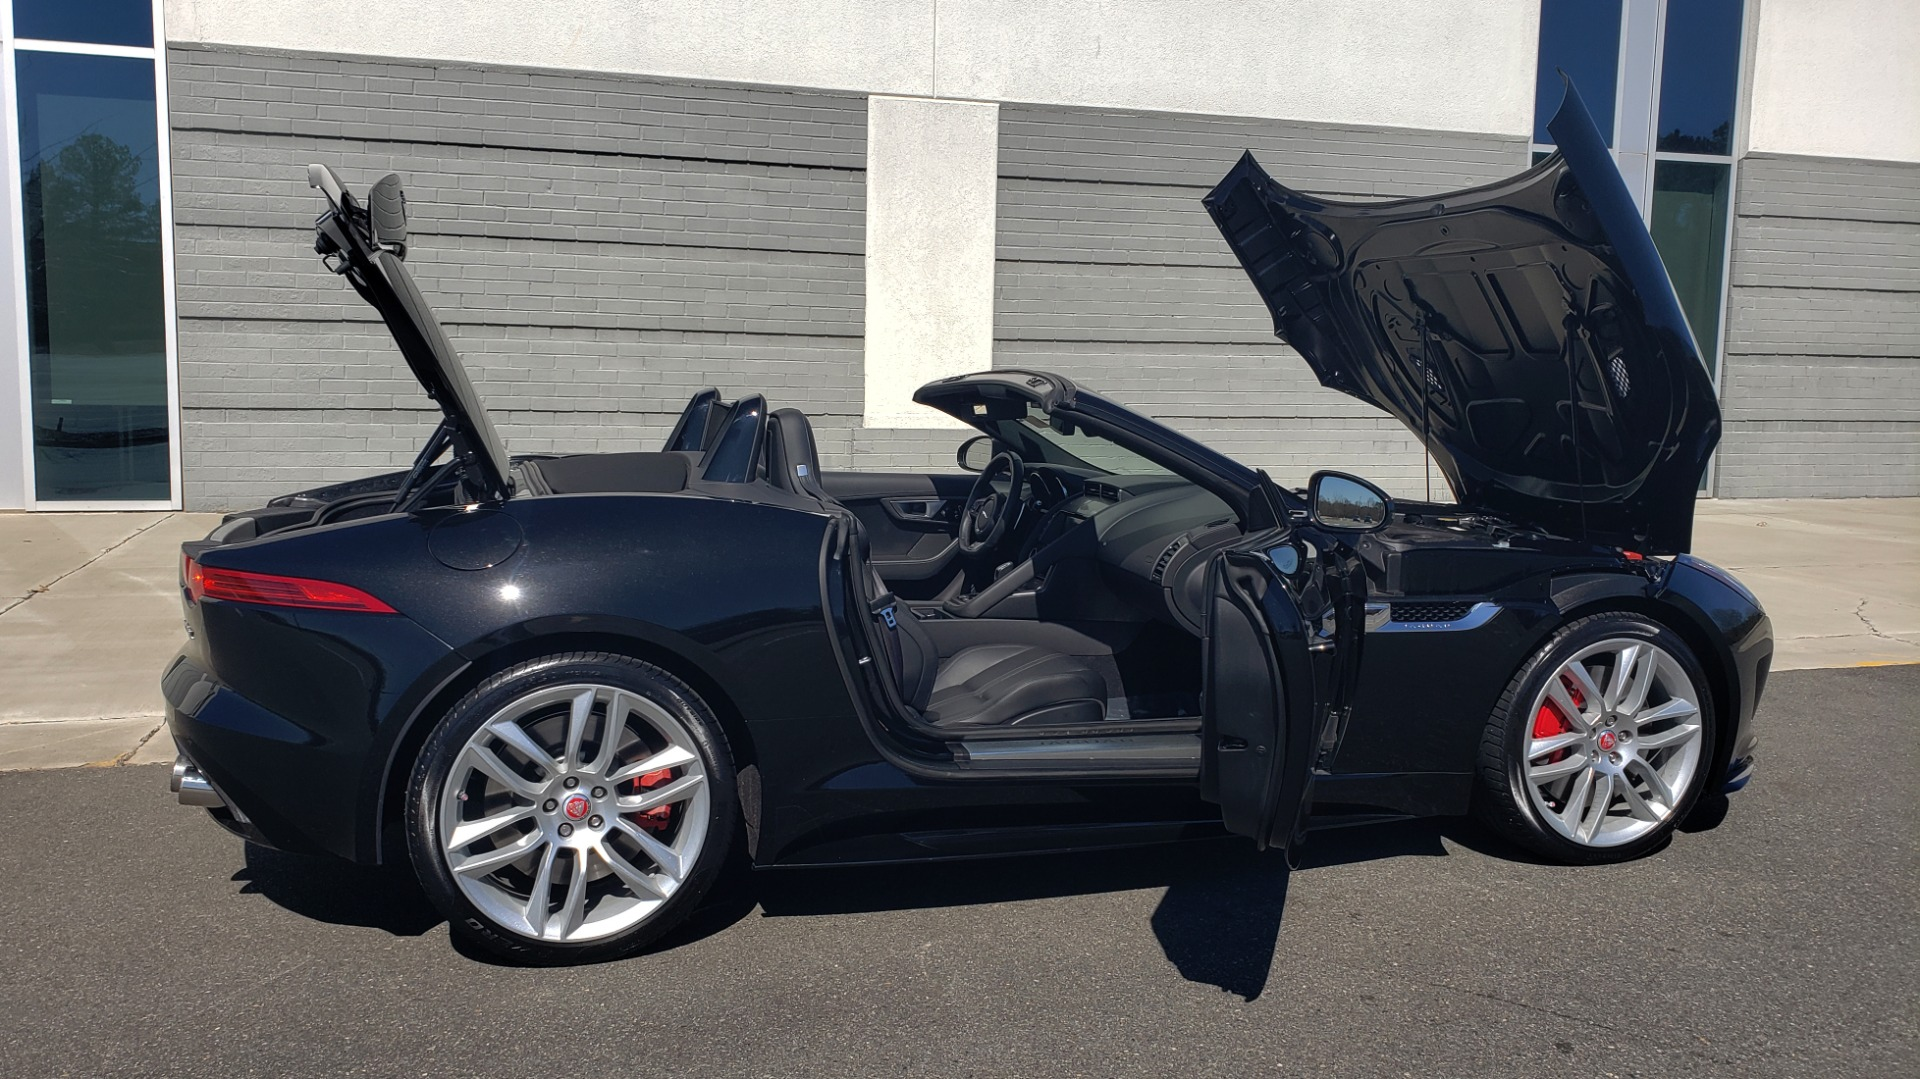 Used 2016 Jaguar F-TYPE R CONVERTIBLE / SC 5.0L 550HP / VISION PACK 3 / BSM / REARVIEW for sale $63,000 at Formula Imports in Charlotte NC 28227 40